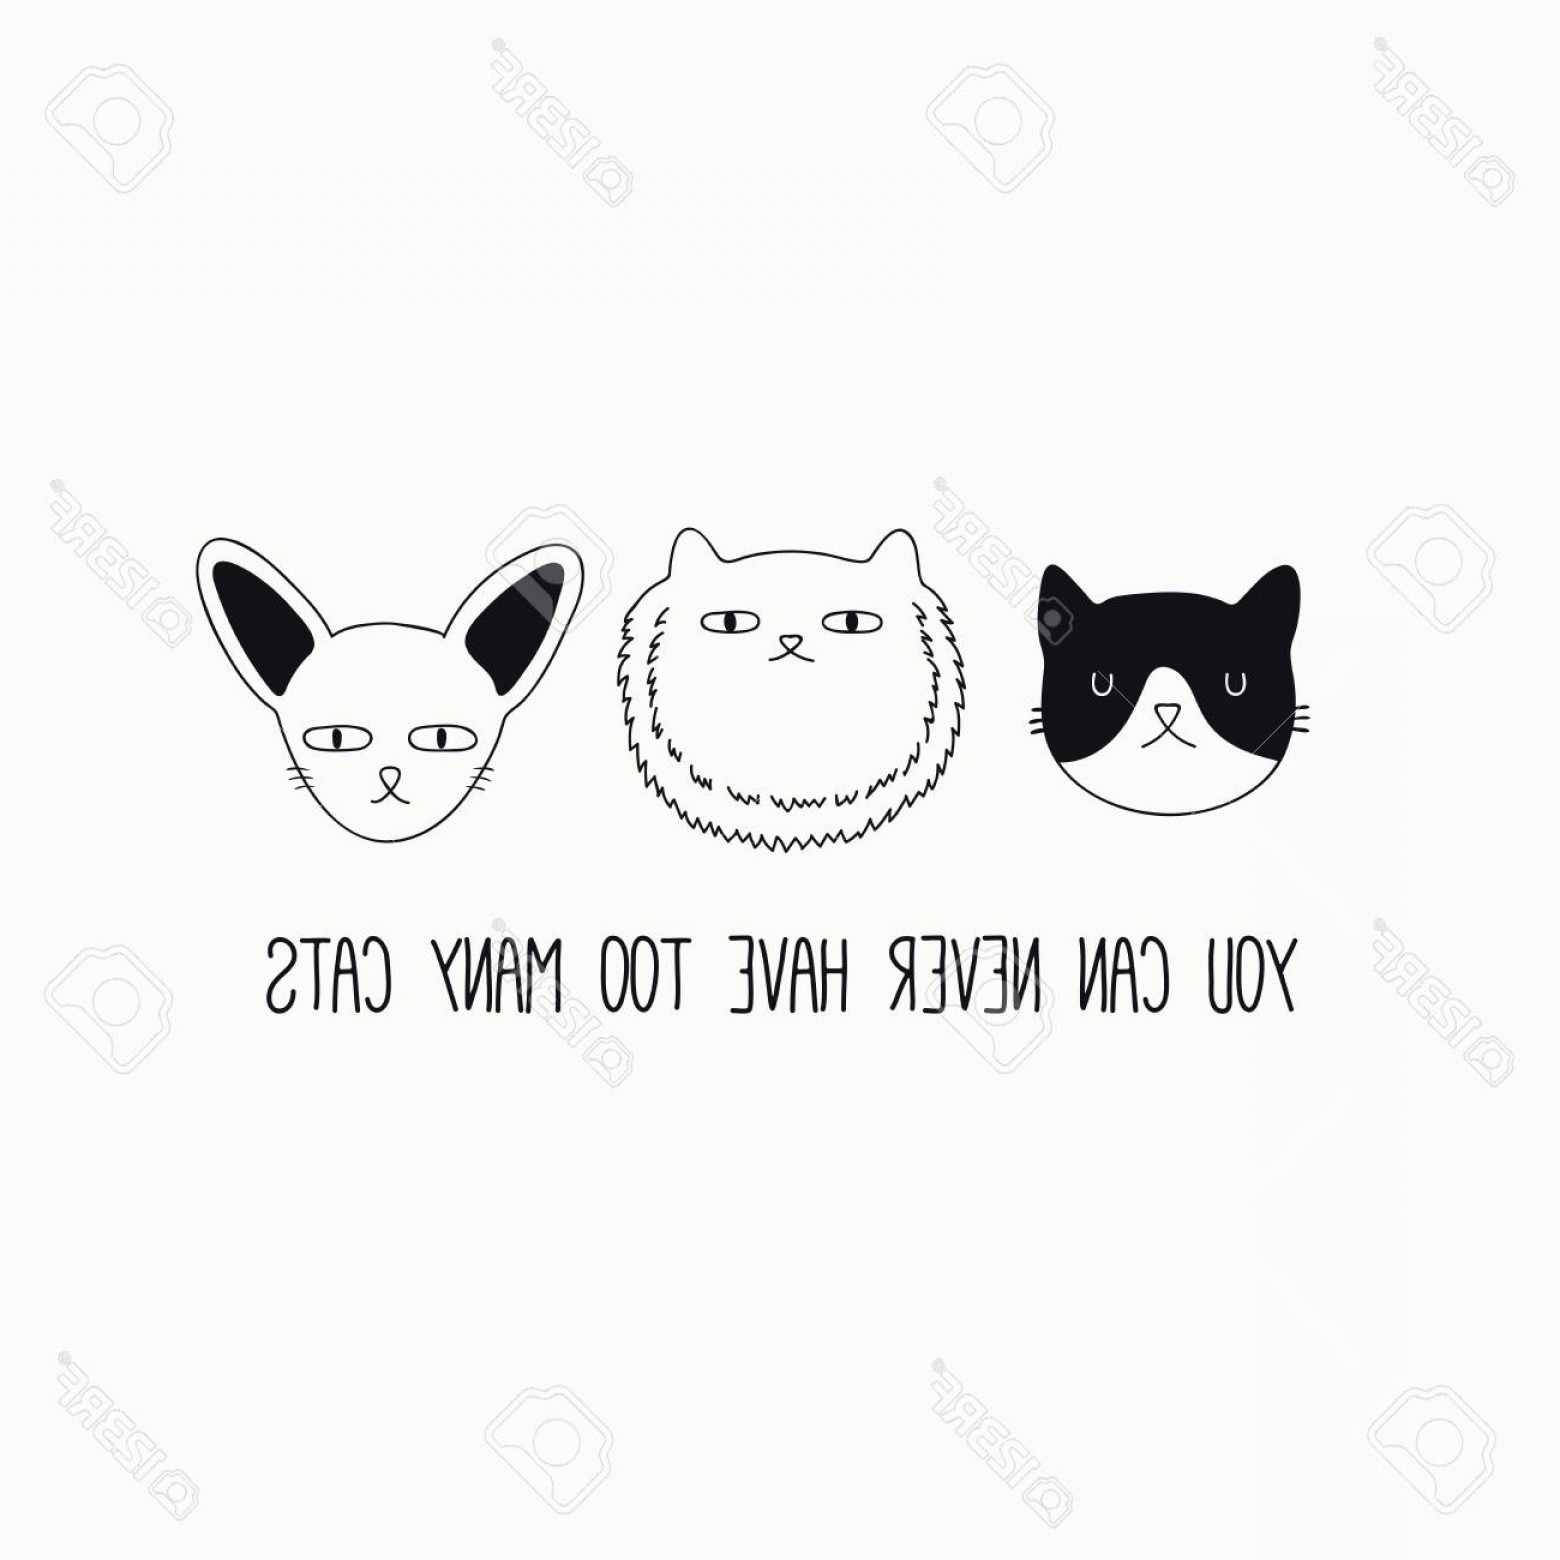 Funny Black And White Vector: Photostock Vector Hand Drawn Black And White Vector Illustration Of A Cute Funny Cat Faces With Quote You Can Never Ha